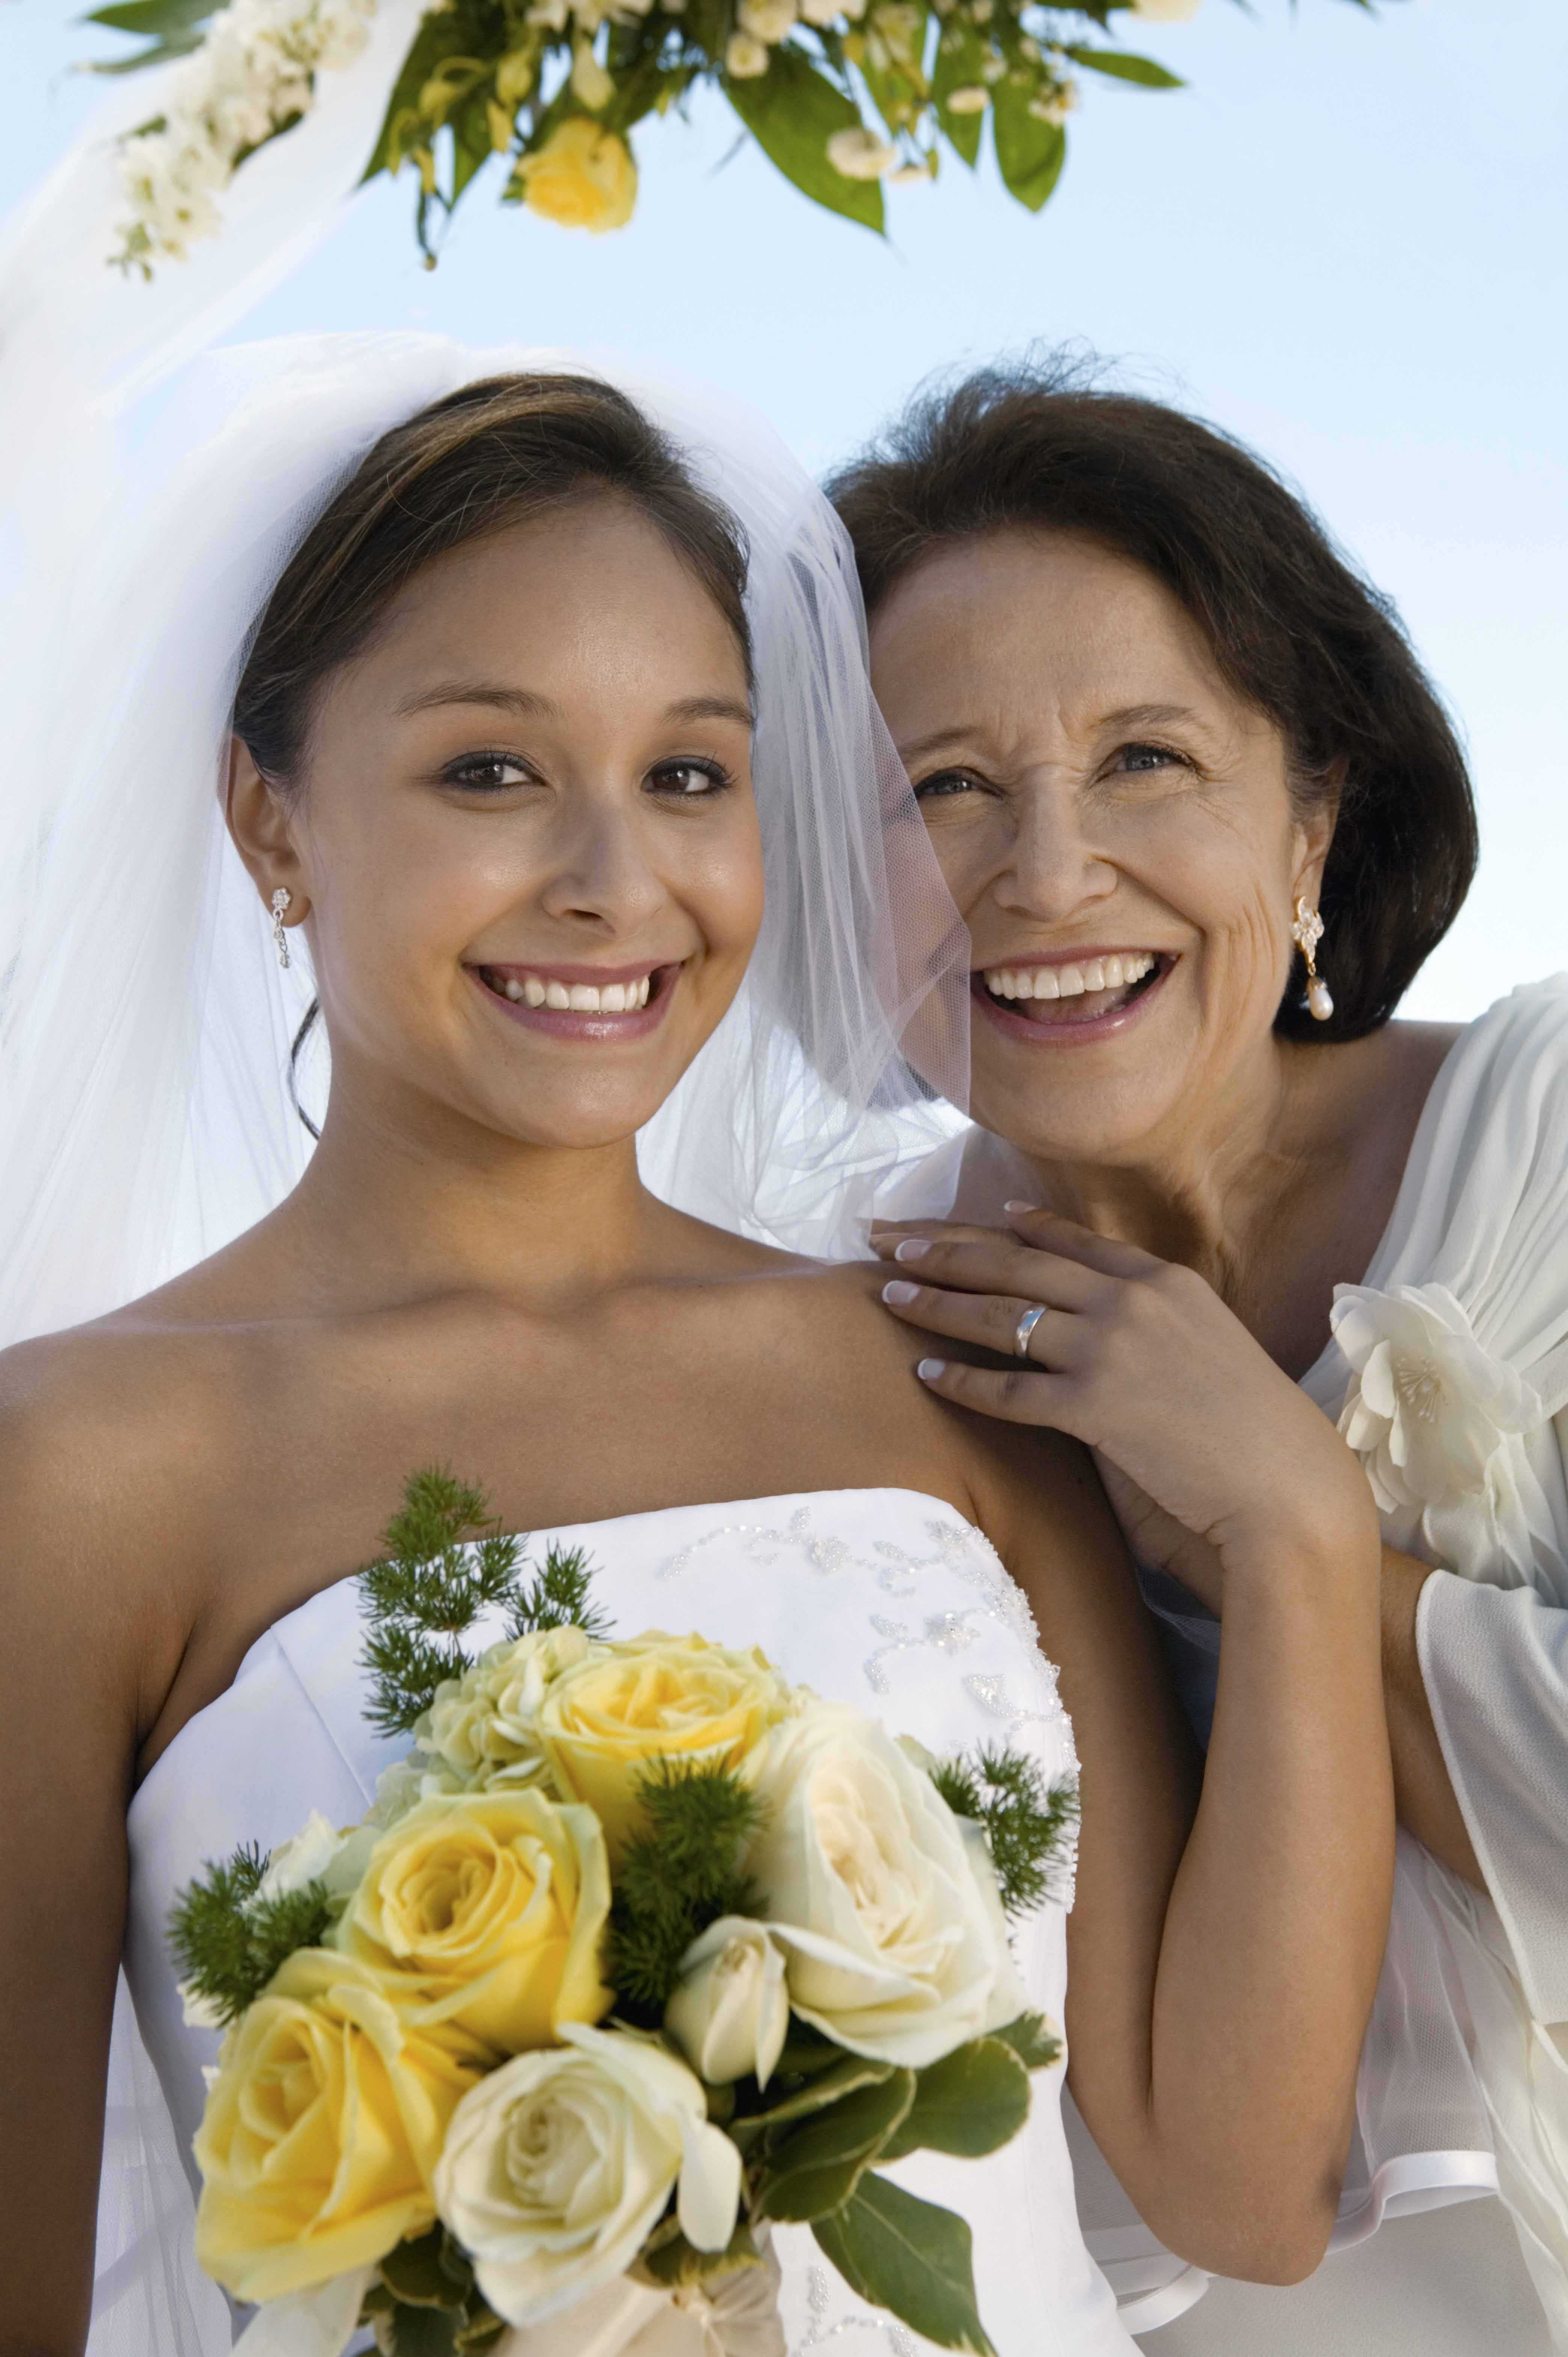 wedding-make-up-tips-for-the-mother-of-the-bride-3